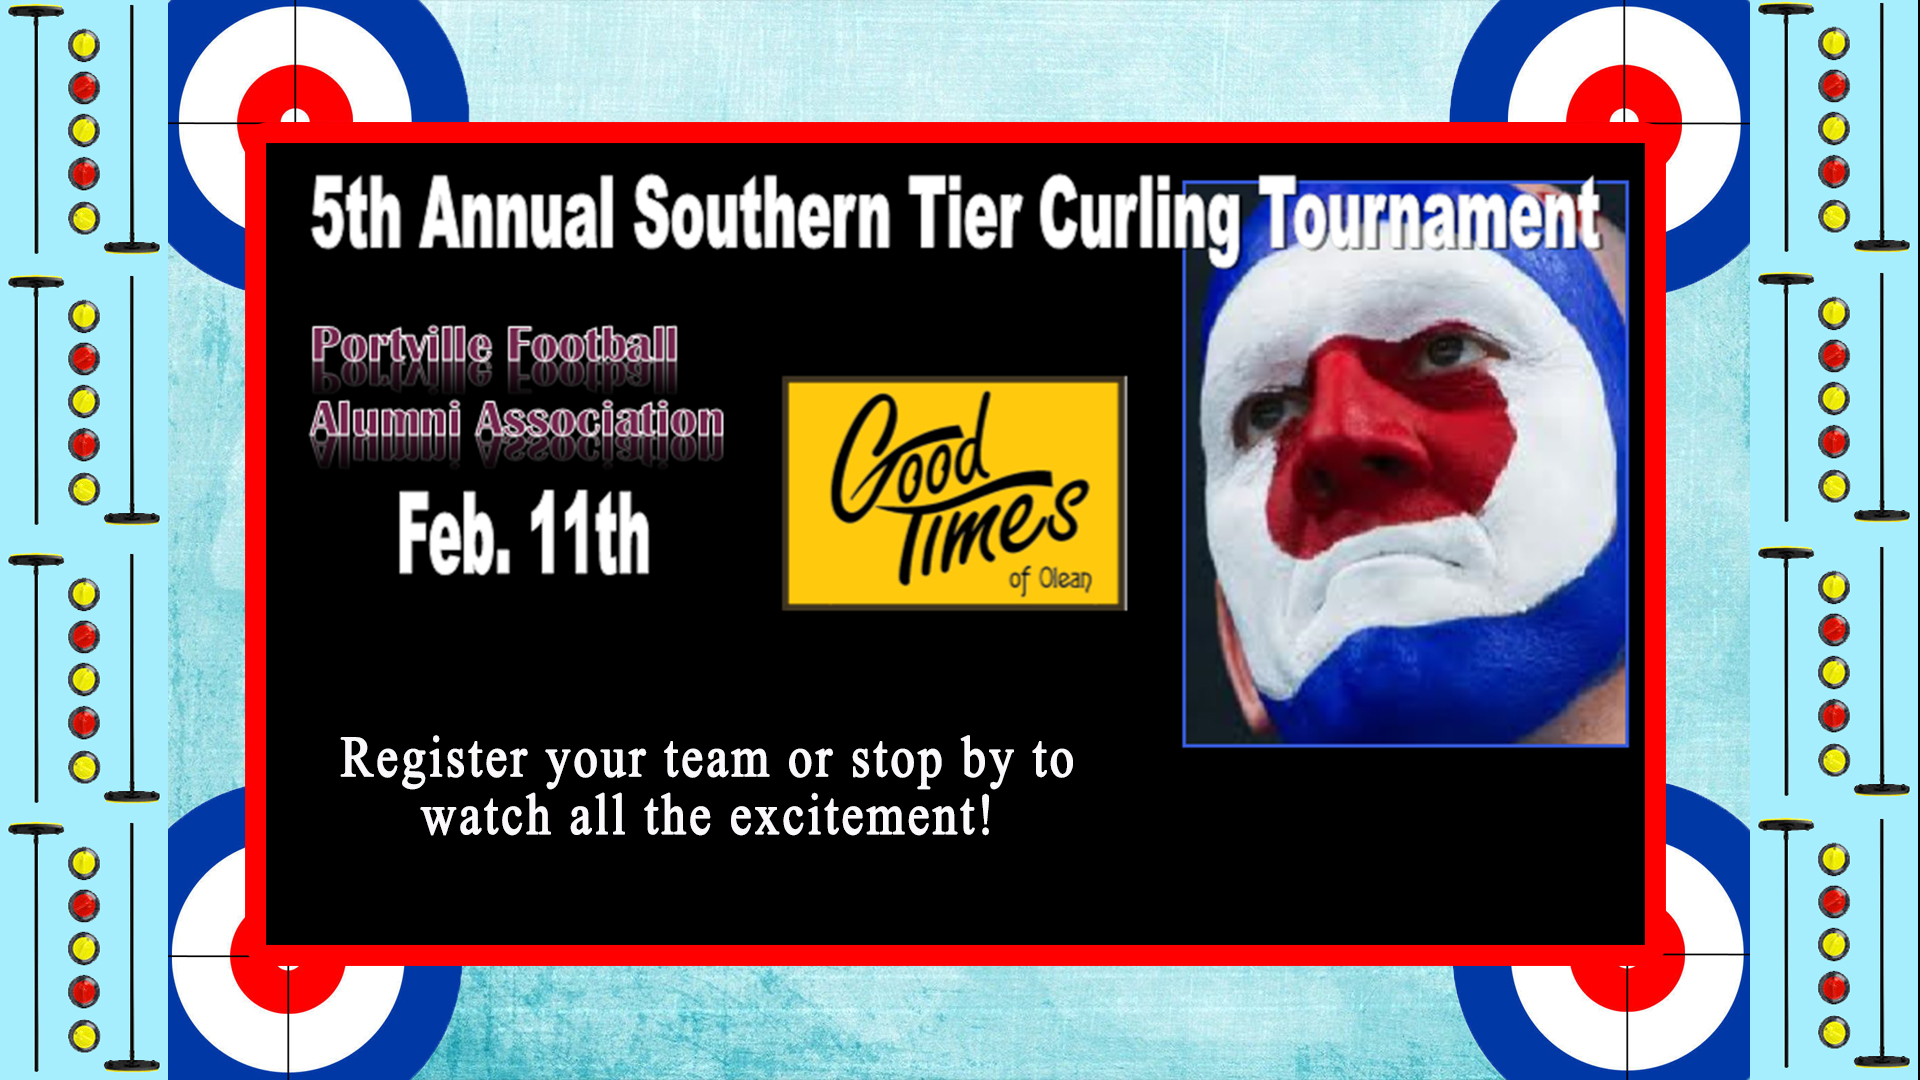 2017 Southern Tier Curling Tournament